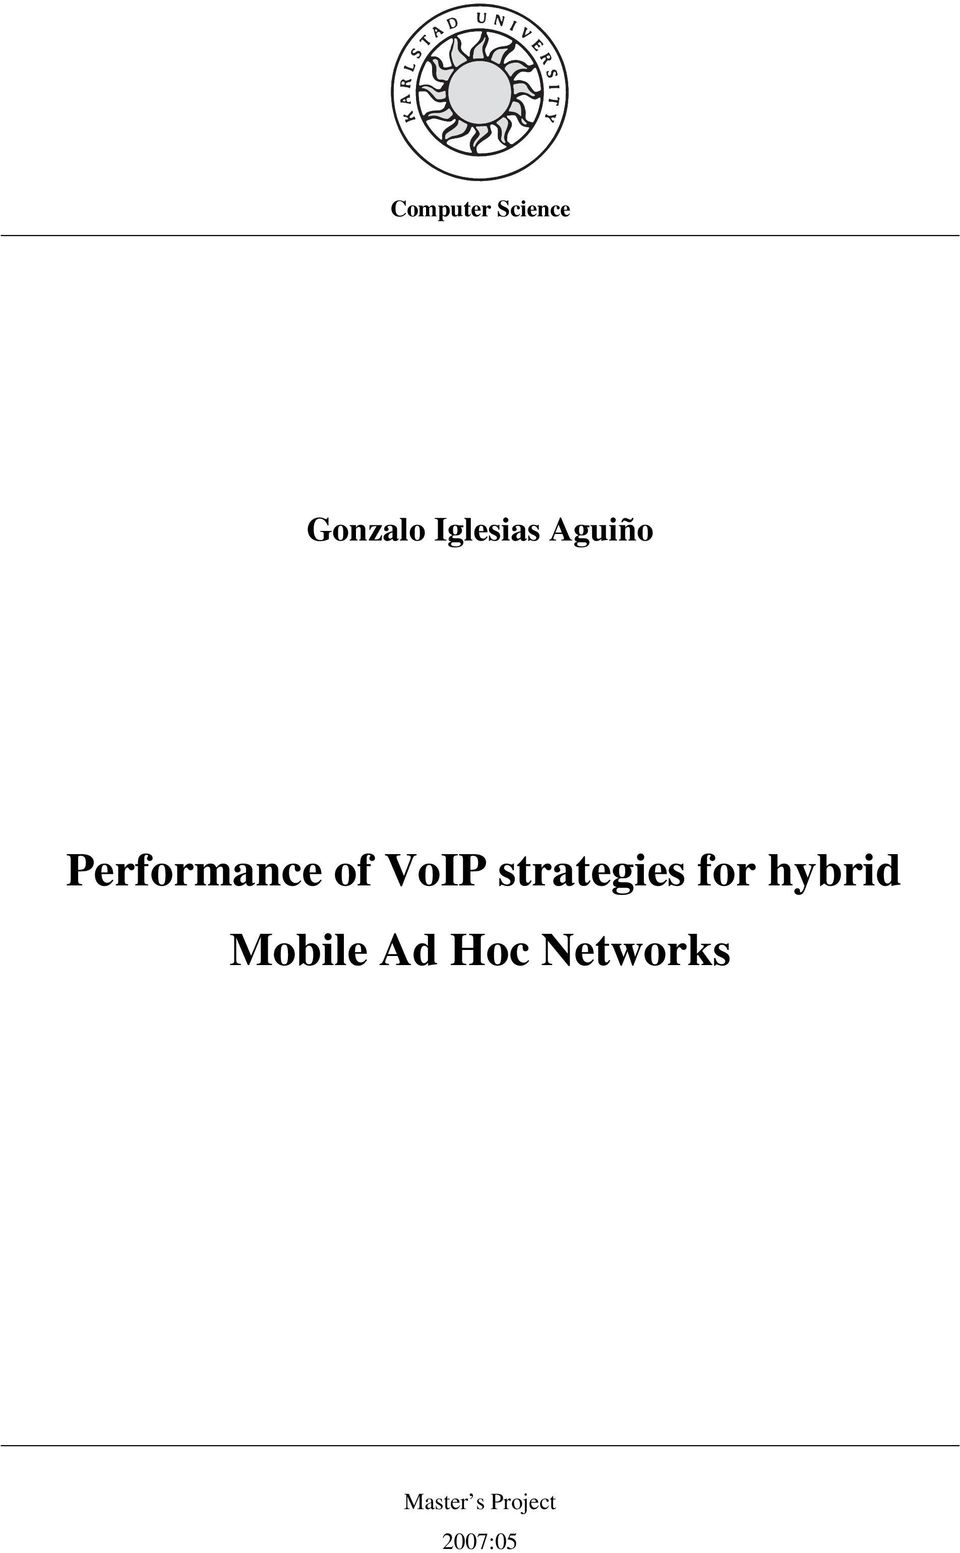 VoIP strategies for hybrid